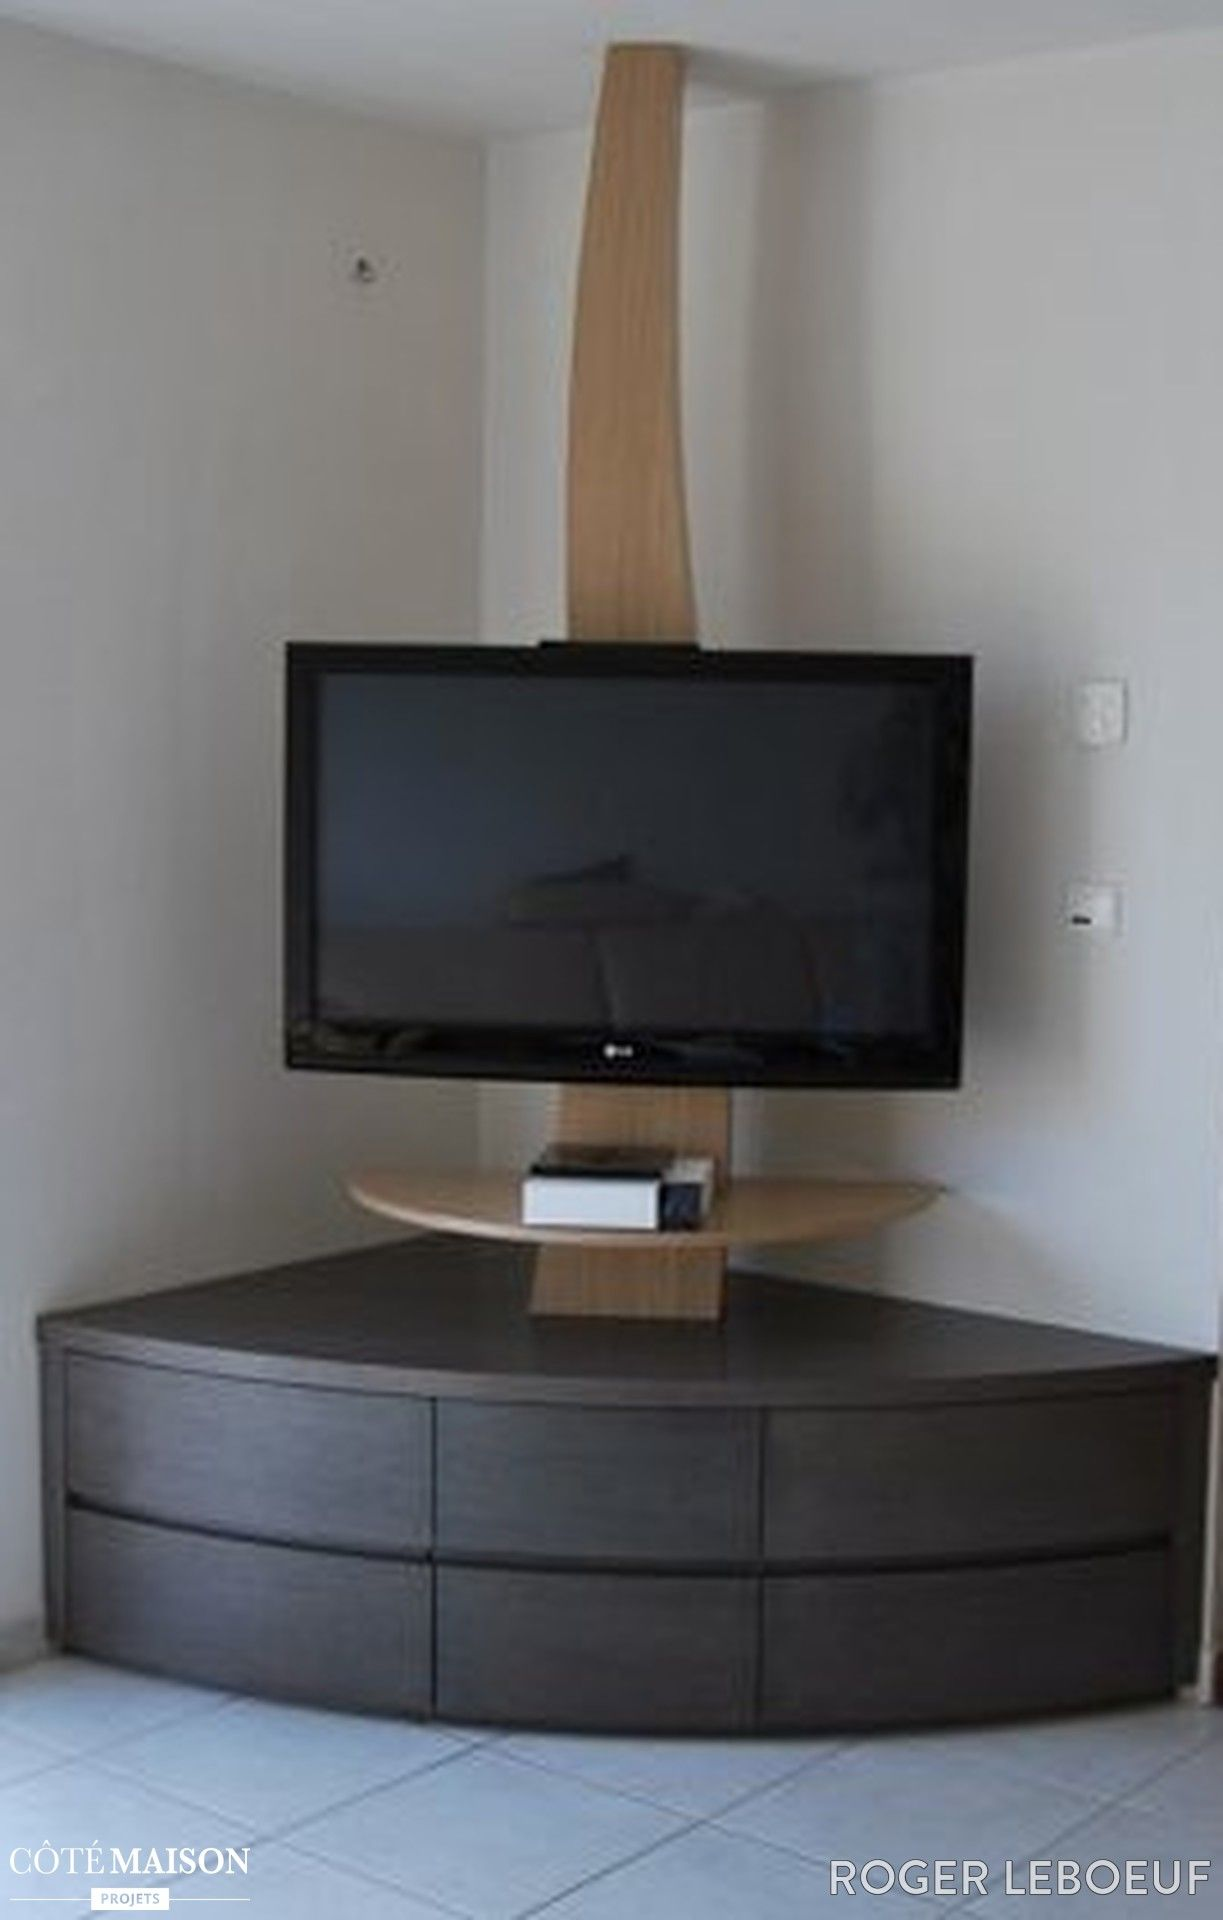 Amenagement Tv Meuble Tv En Coin Meuble Tv Angle Meuble Tele Angle